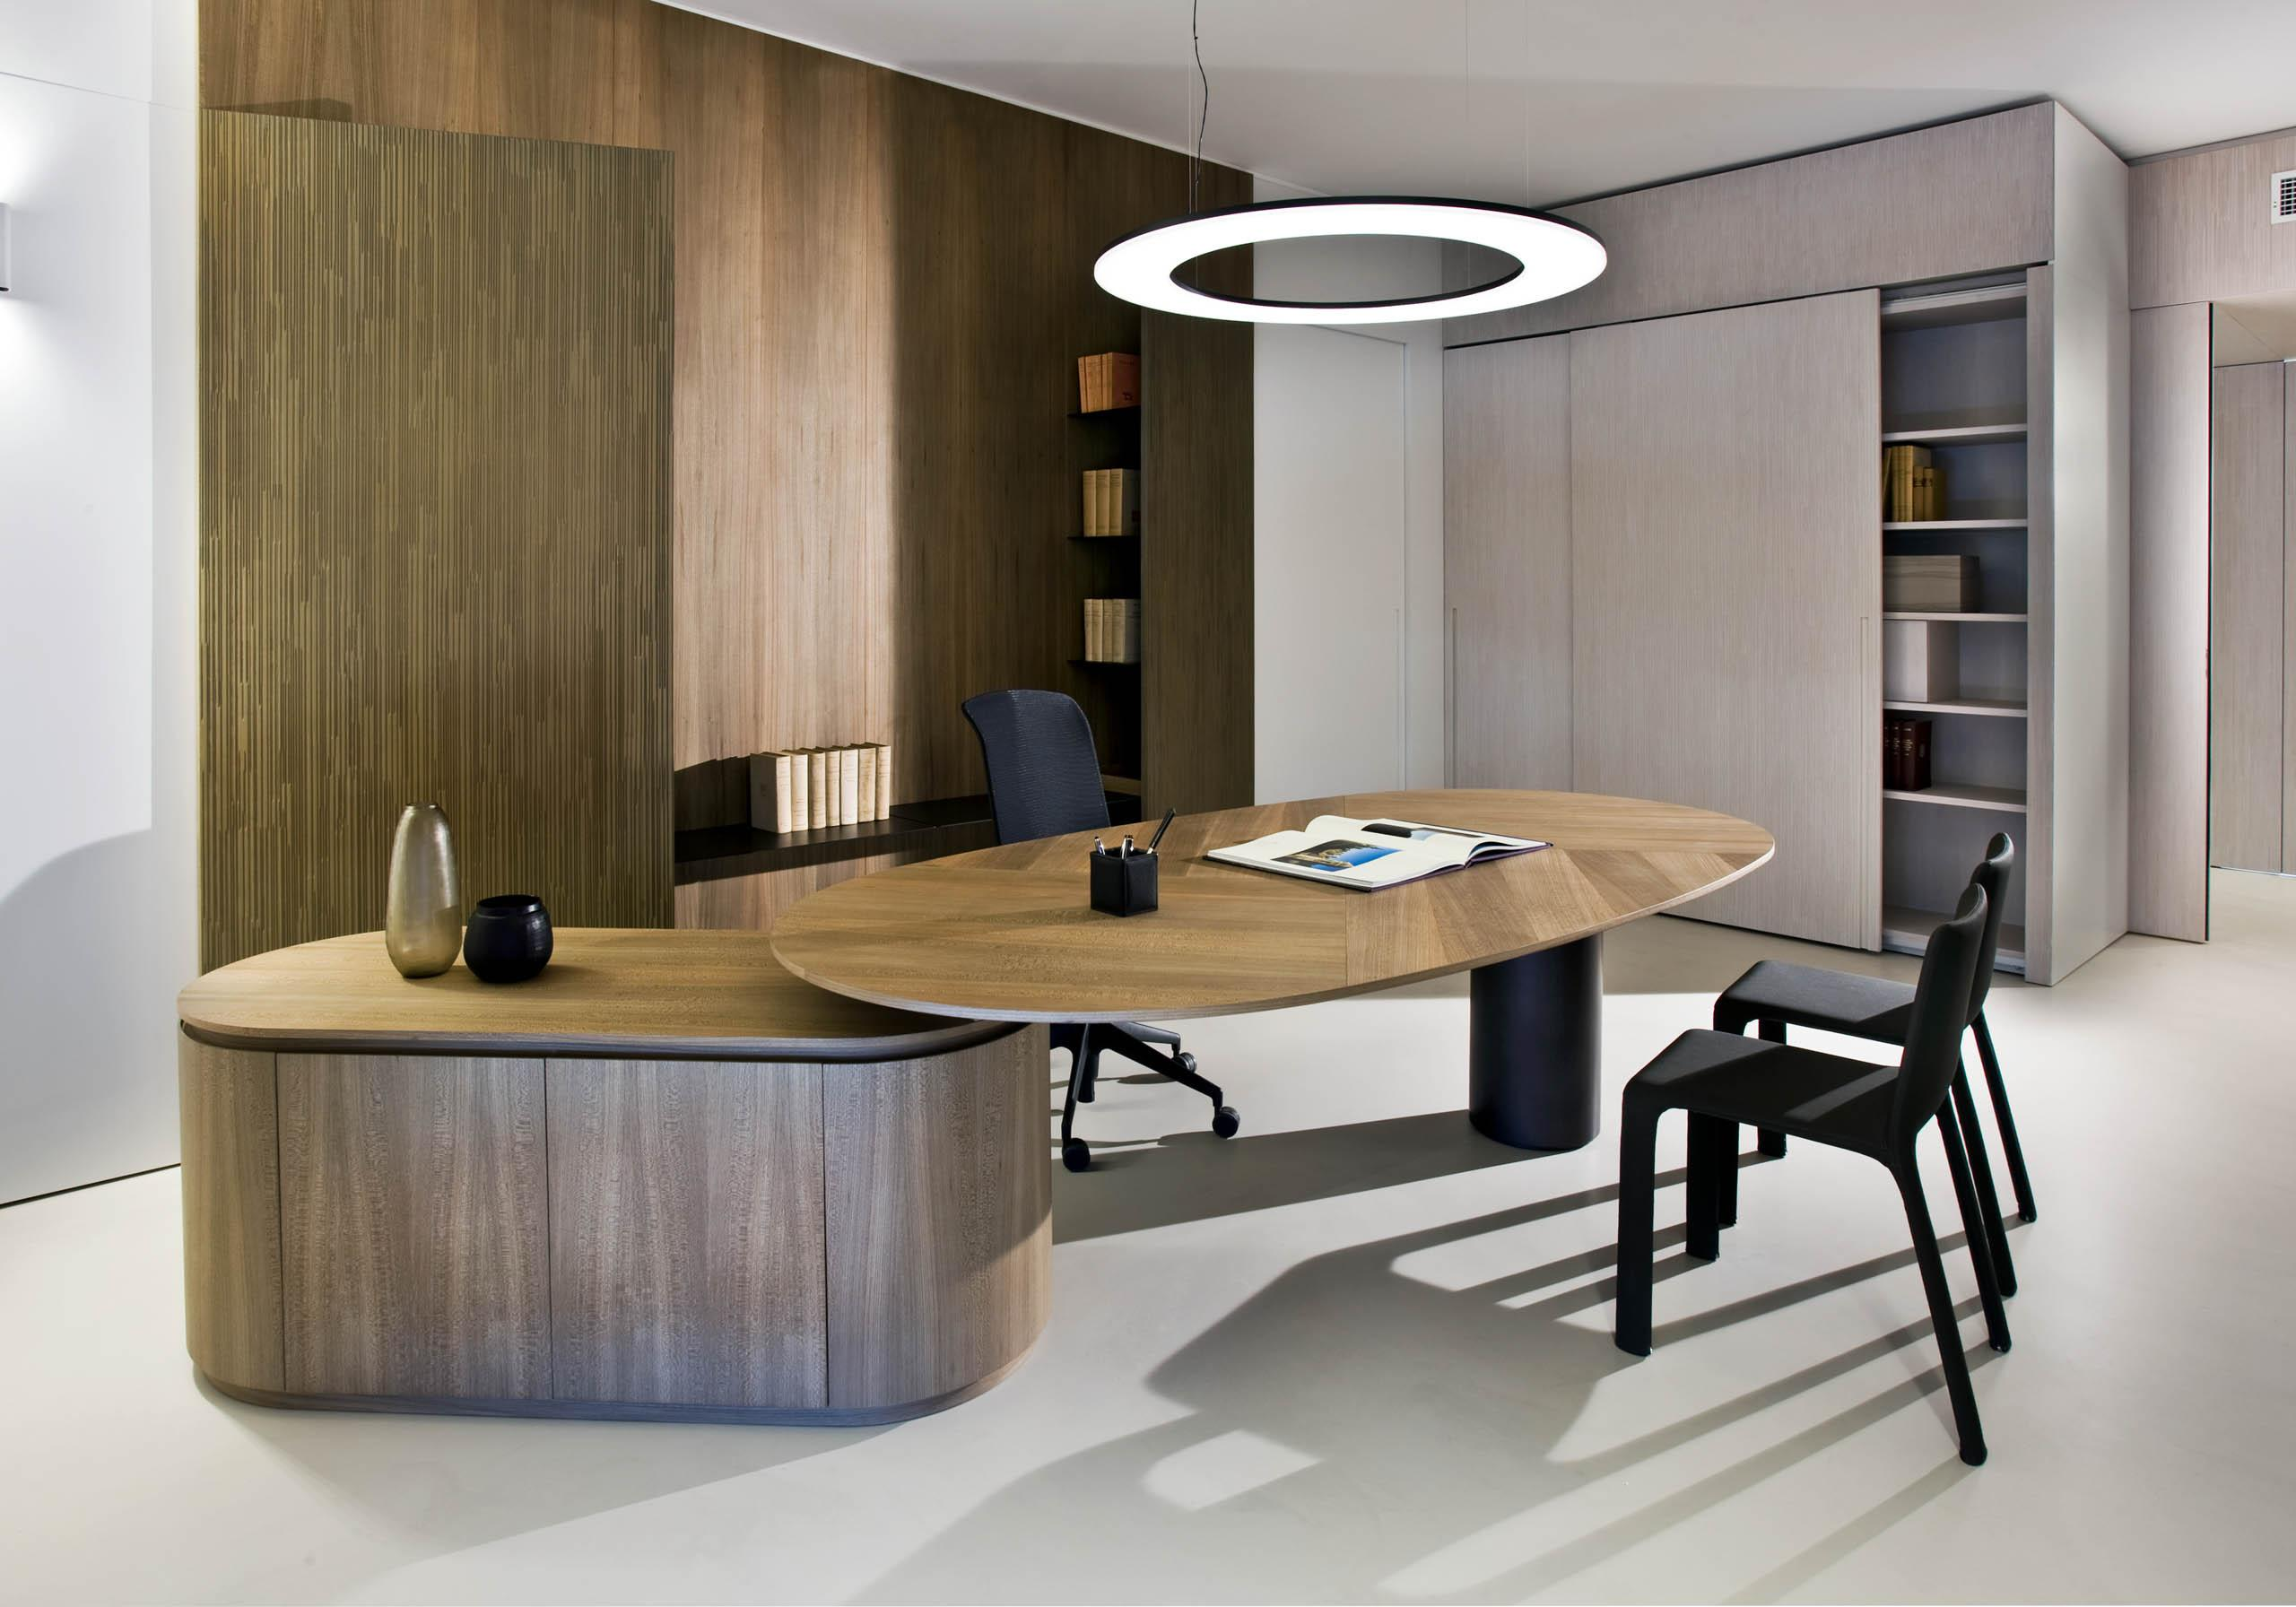 Modern interior design for luxury office desk